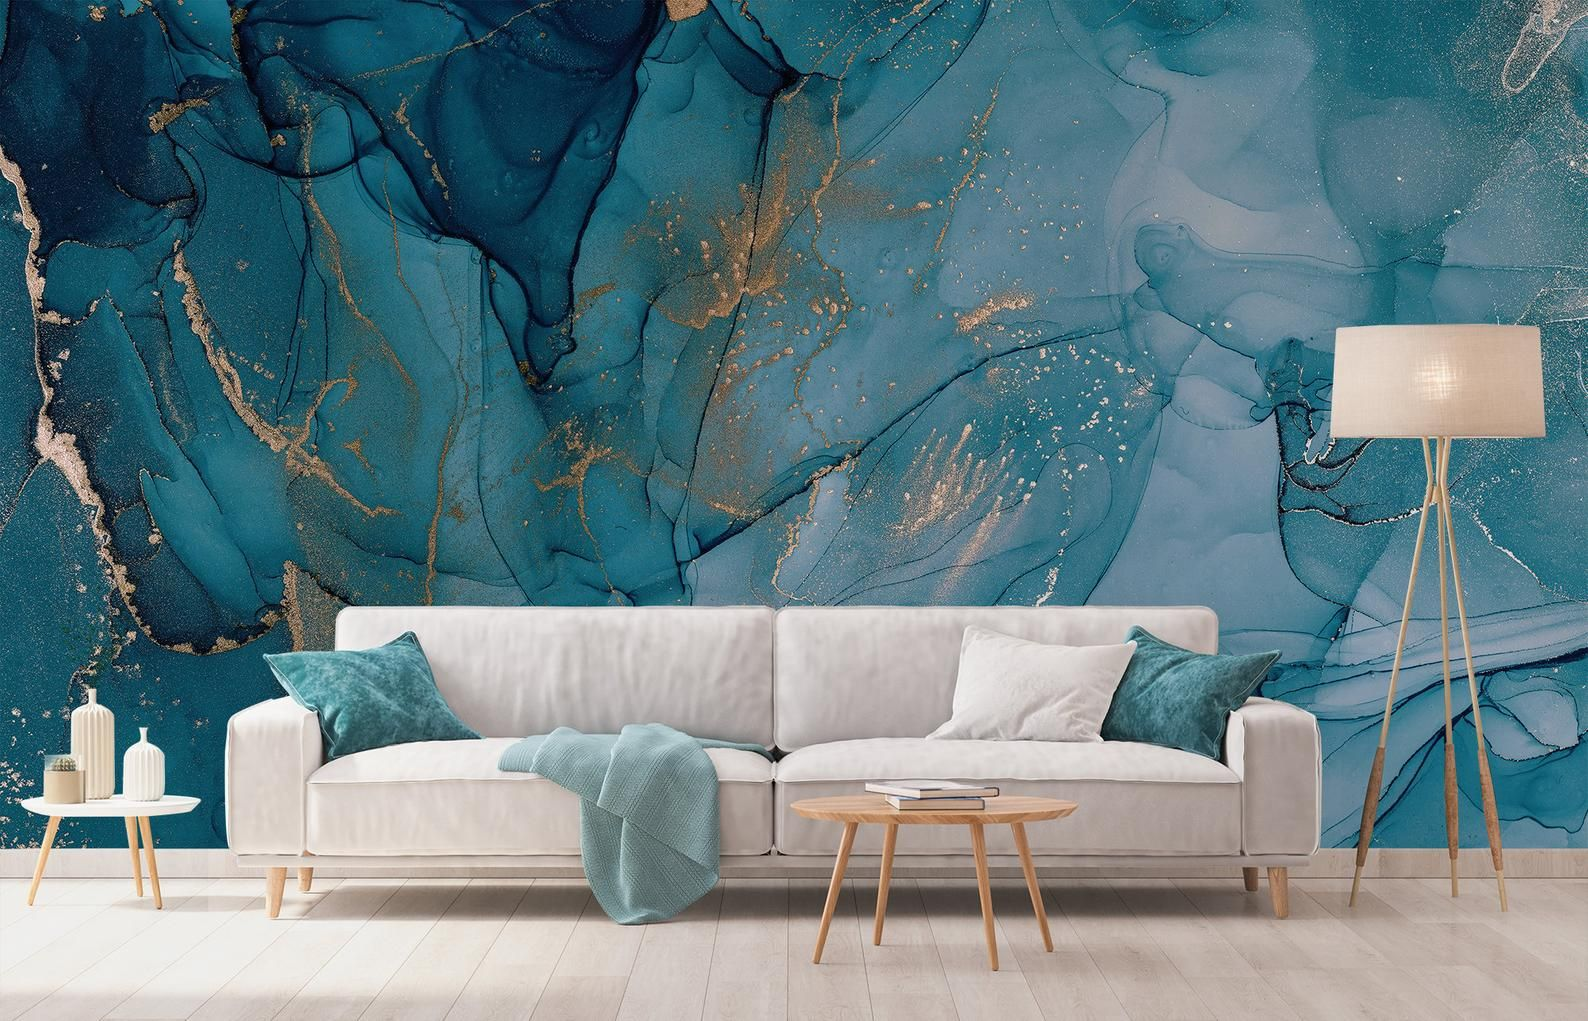 Aquarel Blue Marble Behang Abstract Turquoise En Gold Wall Etsy Blue Marble Wallpaper Marble Wallpaper Watercolor Wallpaper